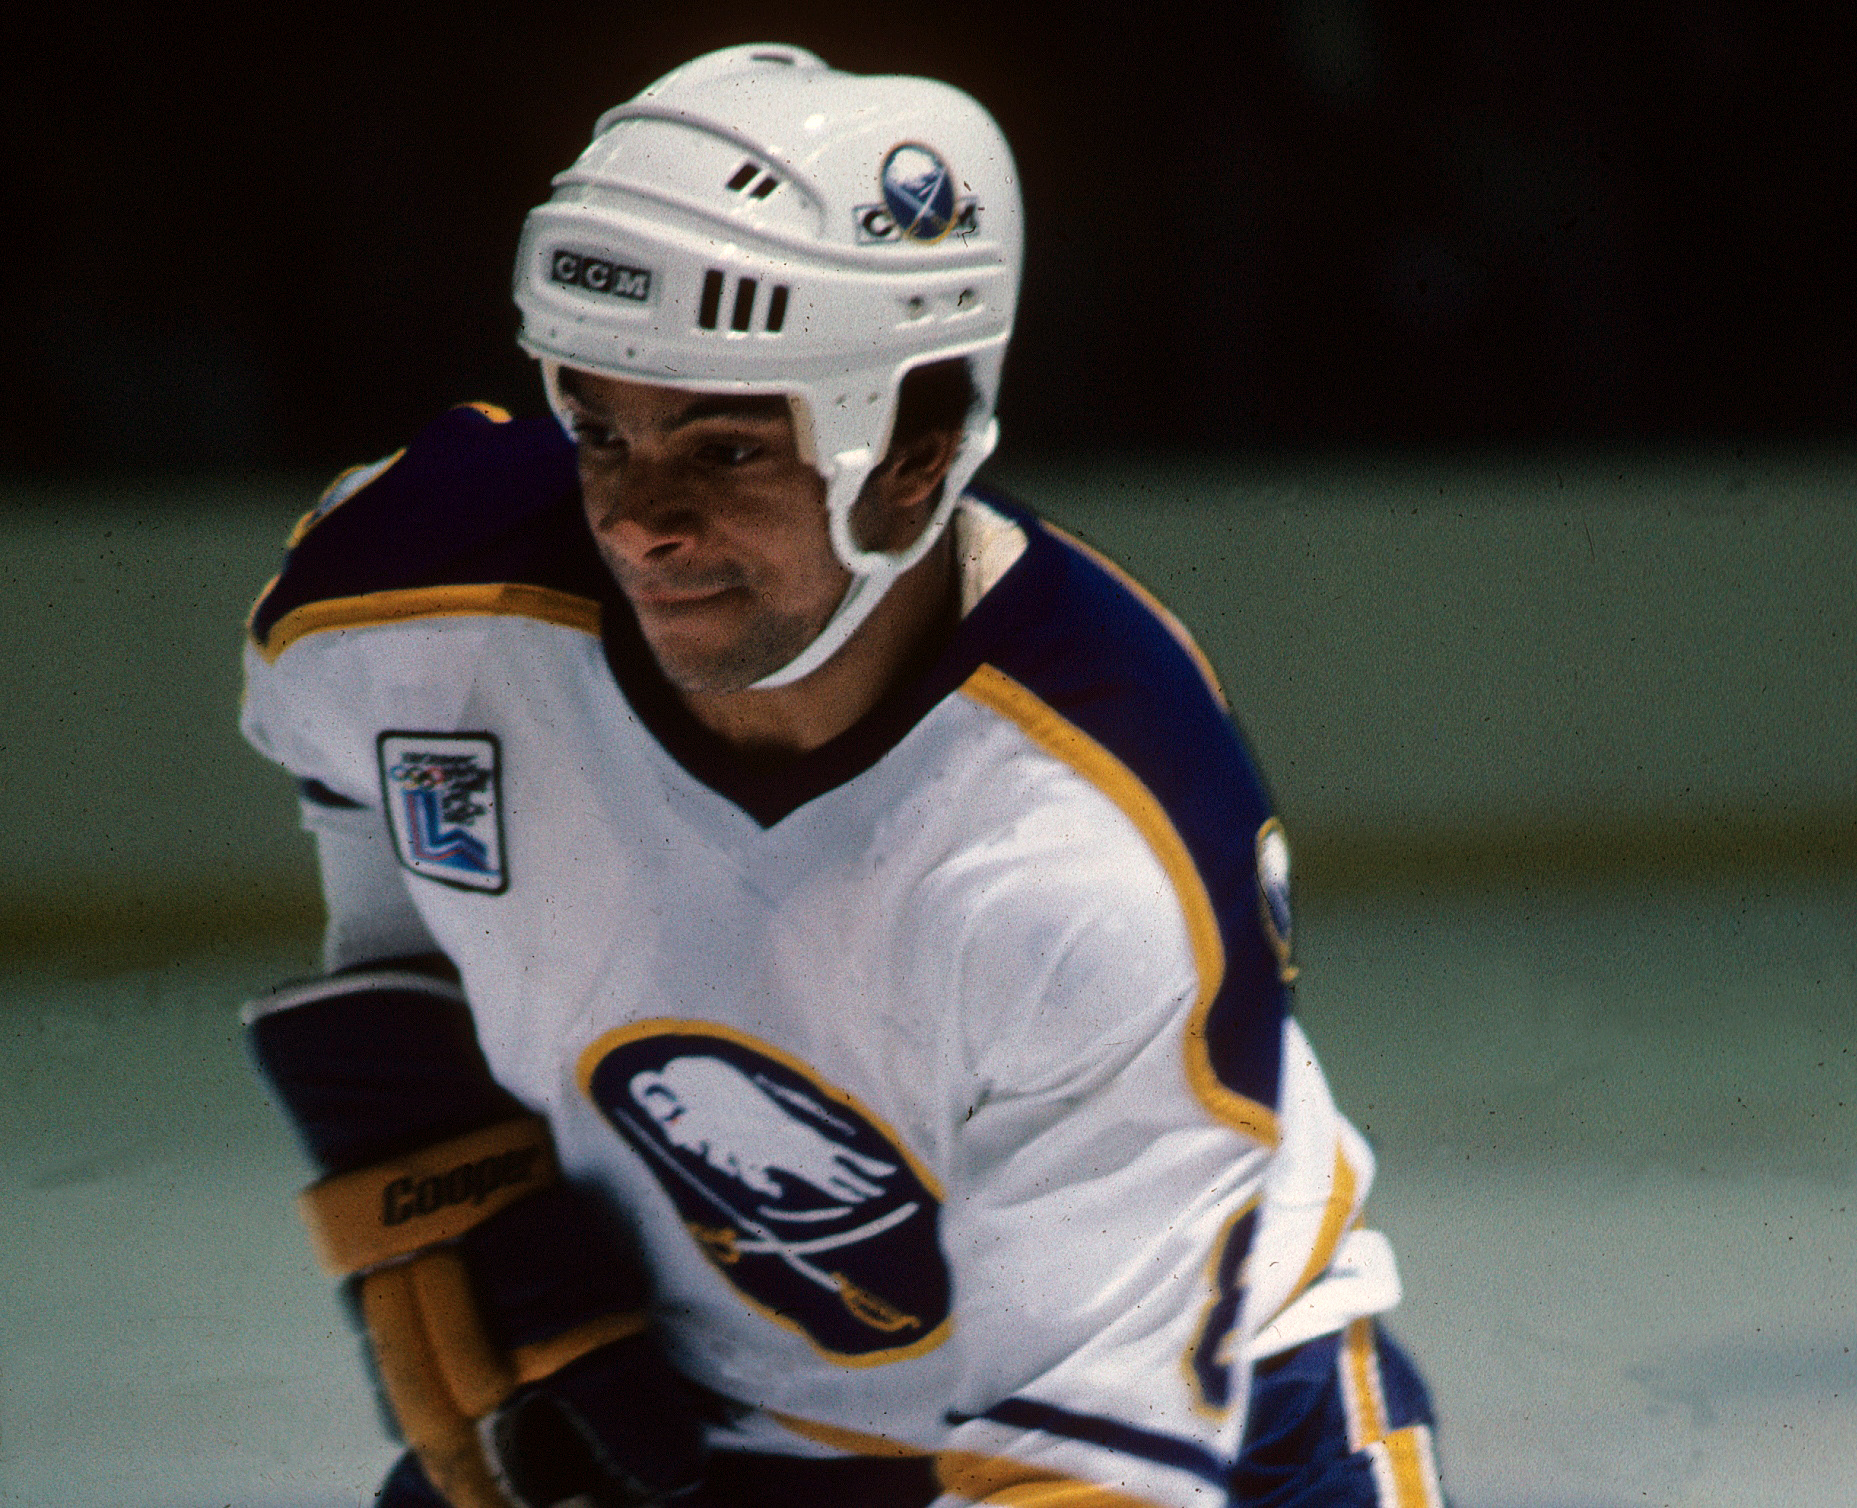 """""""In my journey I was very lucky to go to Buffalo. If I went to some other place, like Atlanta, my experience would have been very different,"""" said McKegney who was drafted by the Sabres in 1978 and played his first four NHL seasons in Buffalo.  Buffalo News file photo)"""